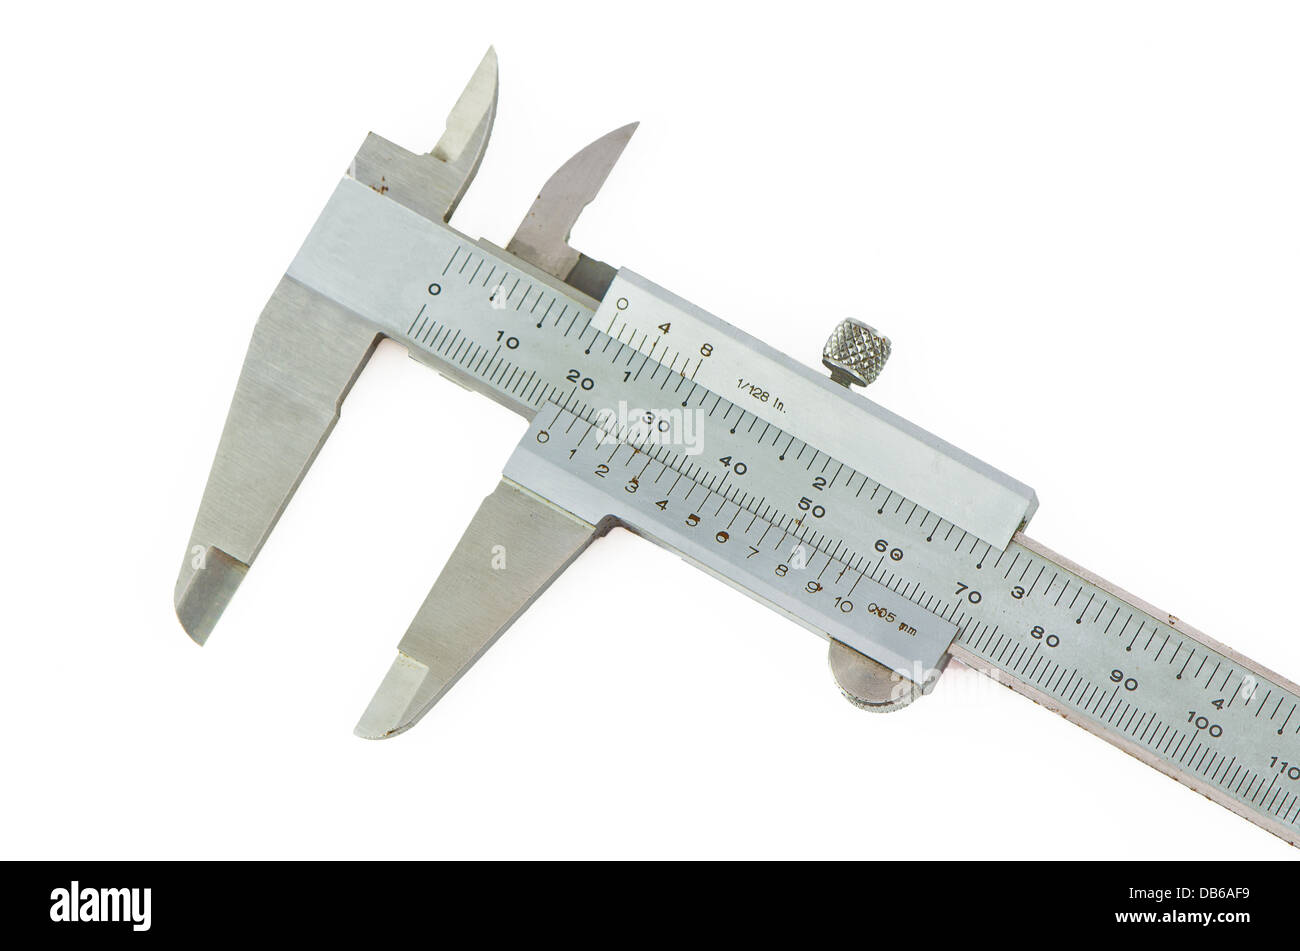 vernier caliper showing 2 centimeters against white background - Stock Image